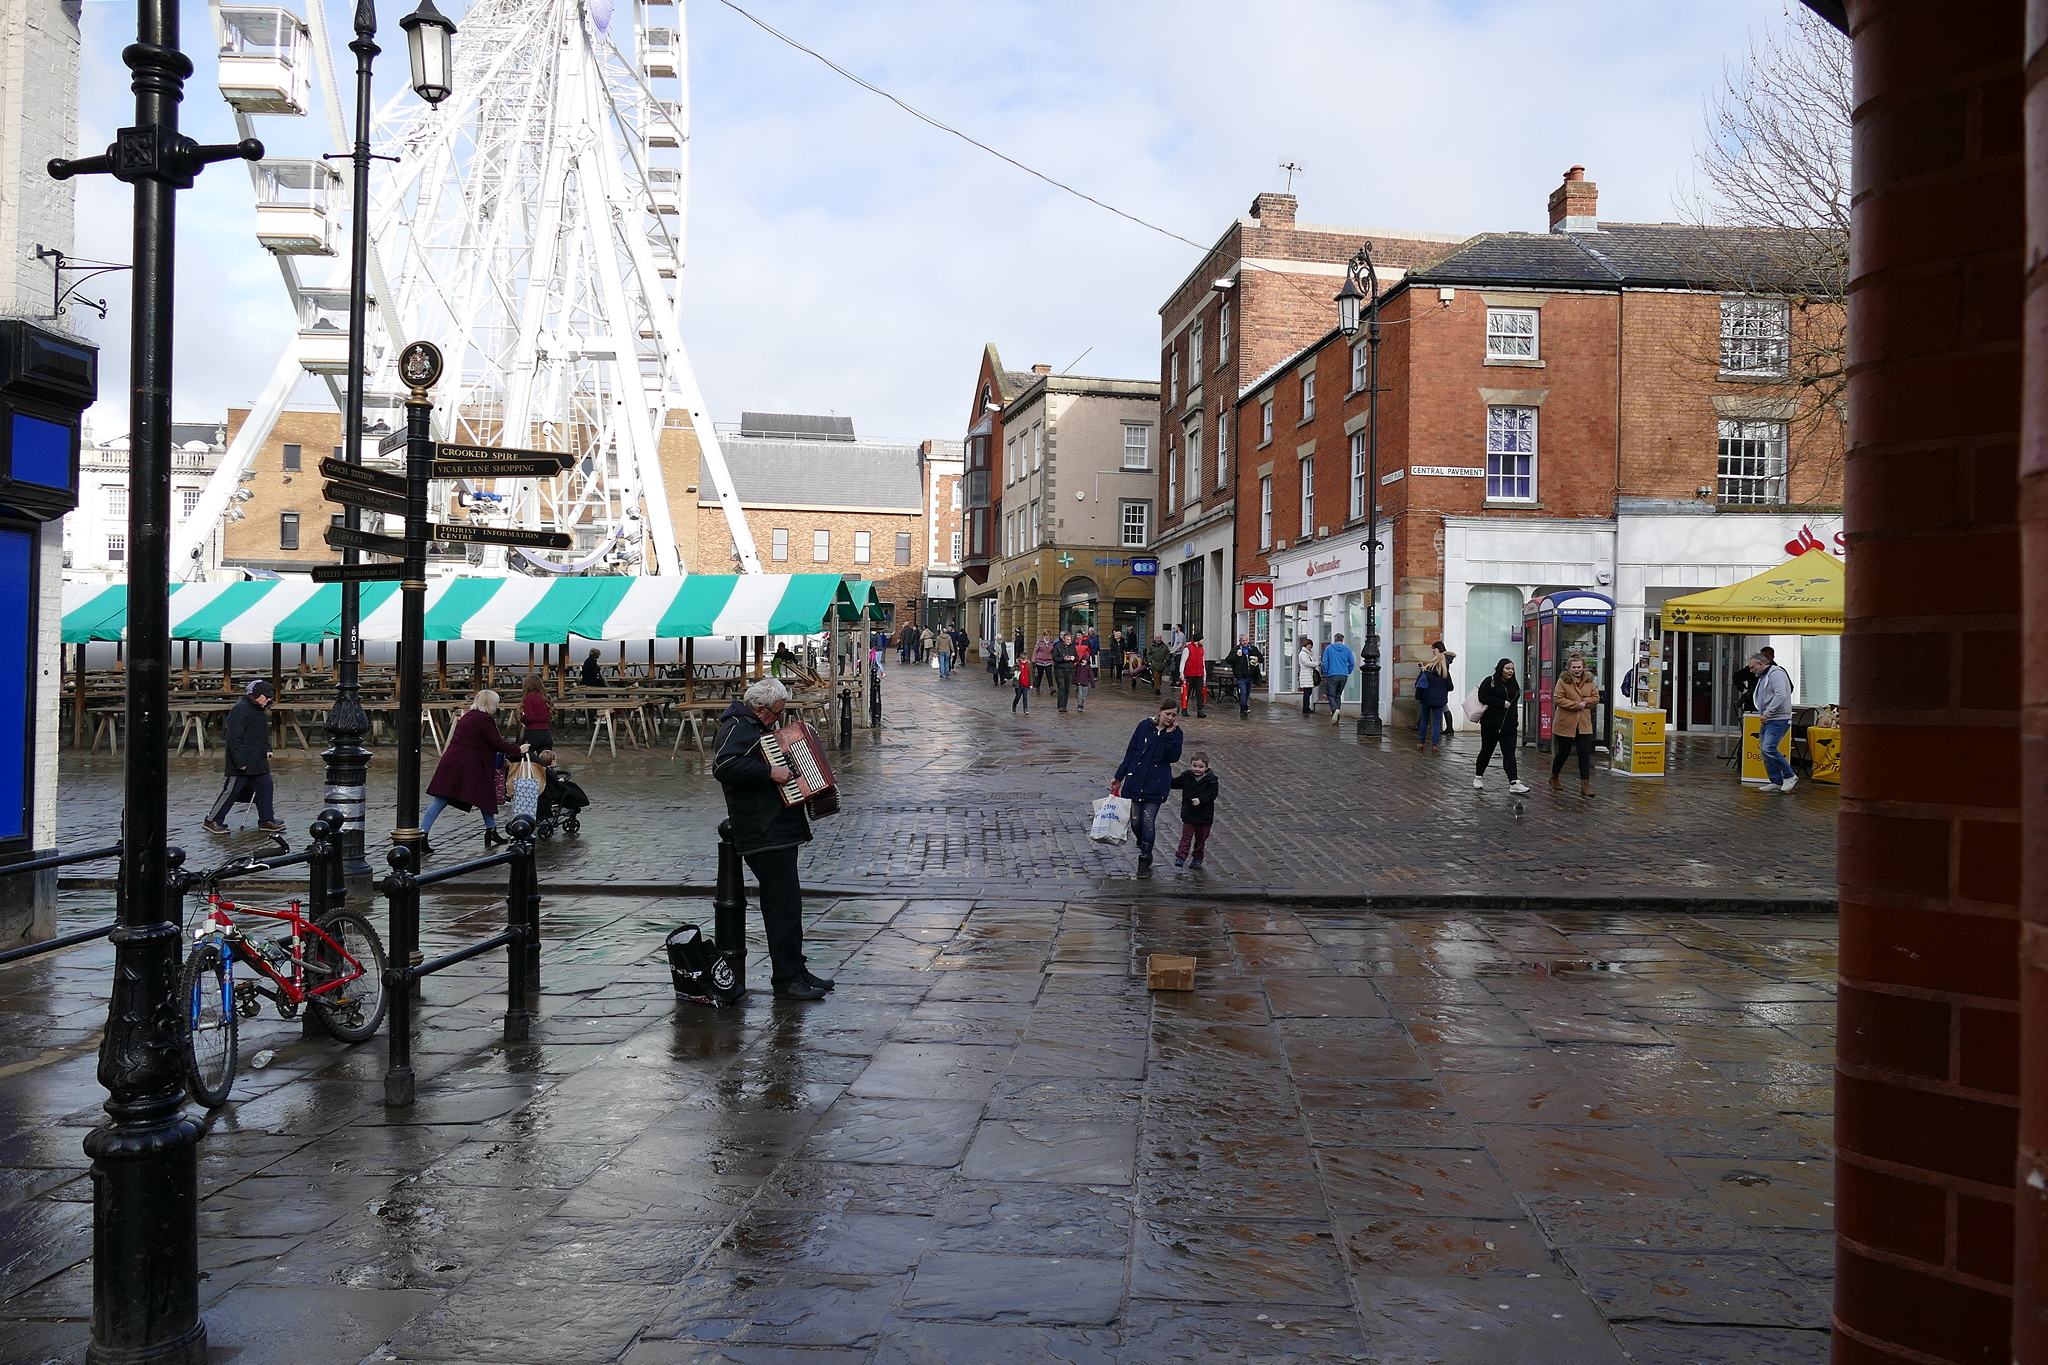 Chesterfield Market Place Wheel 003